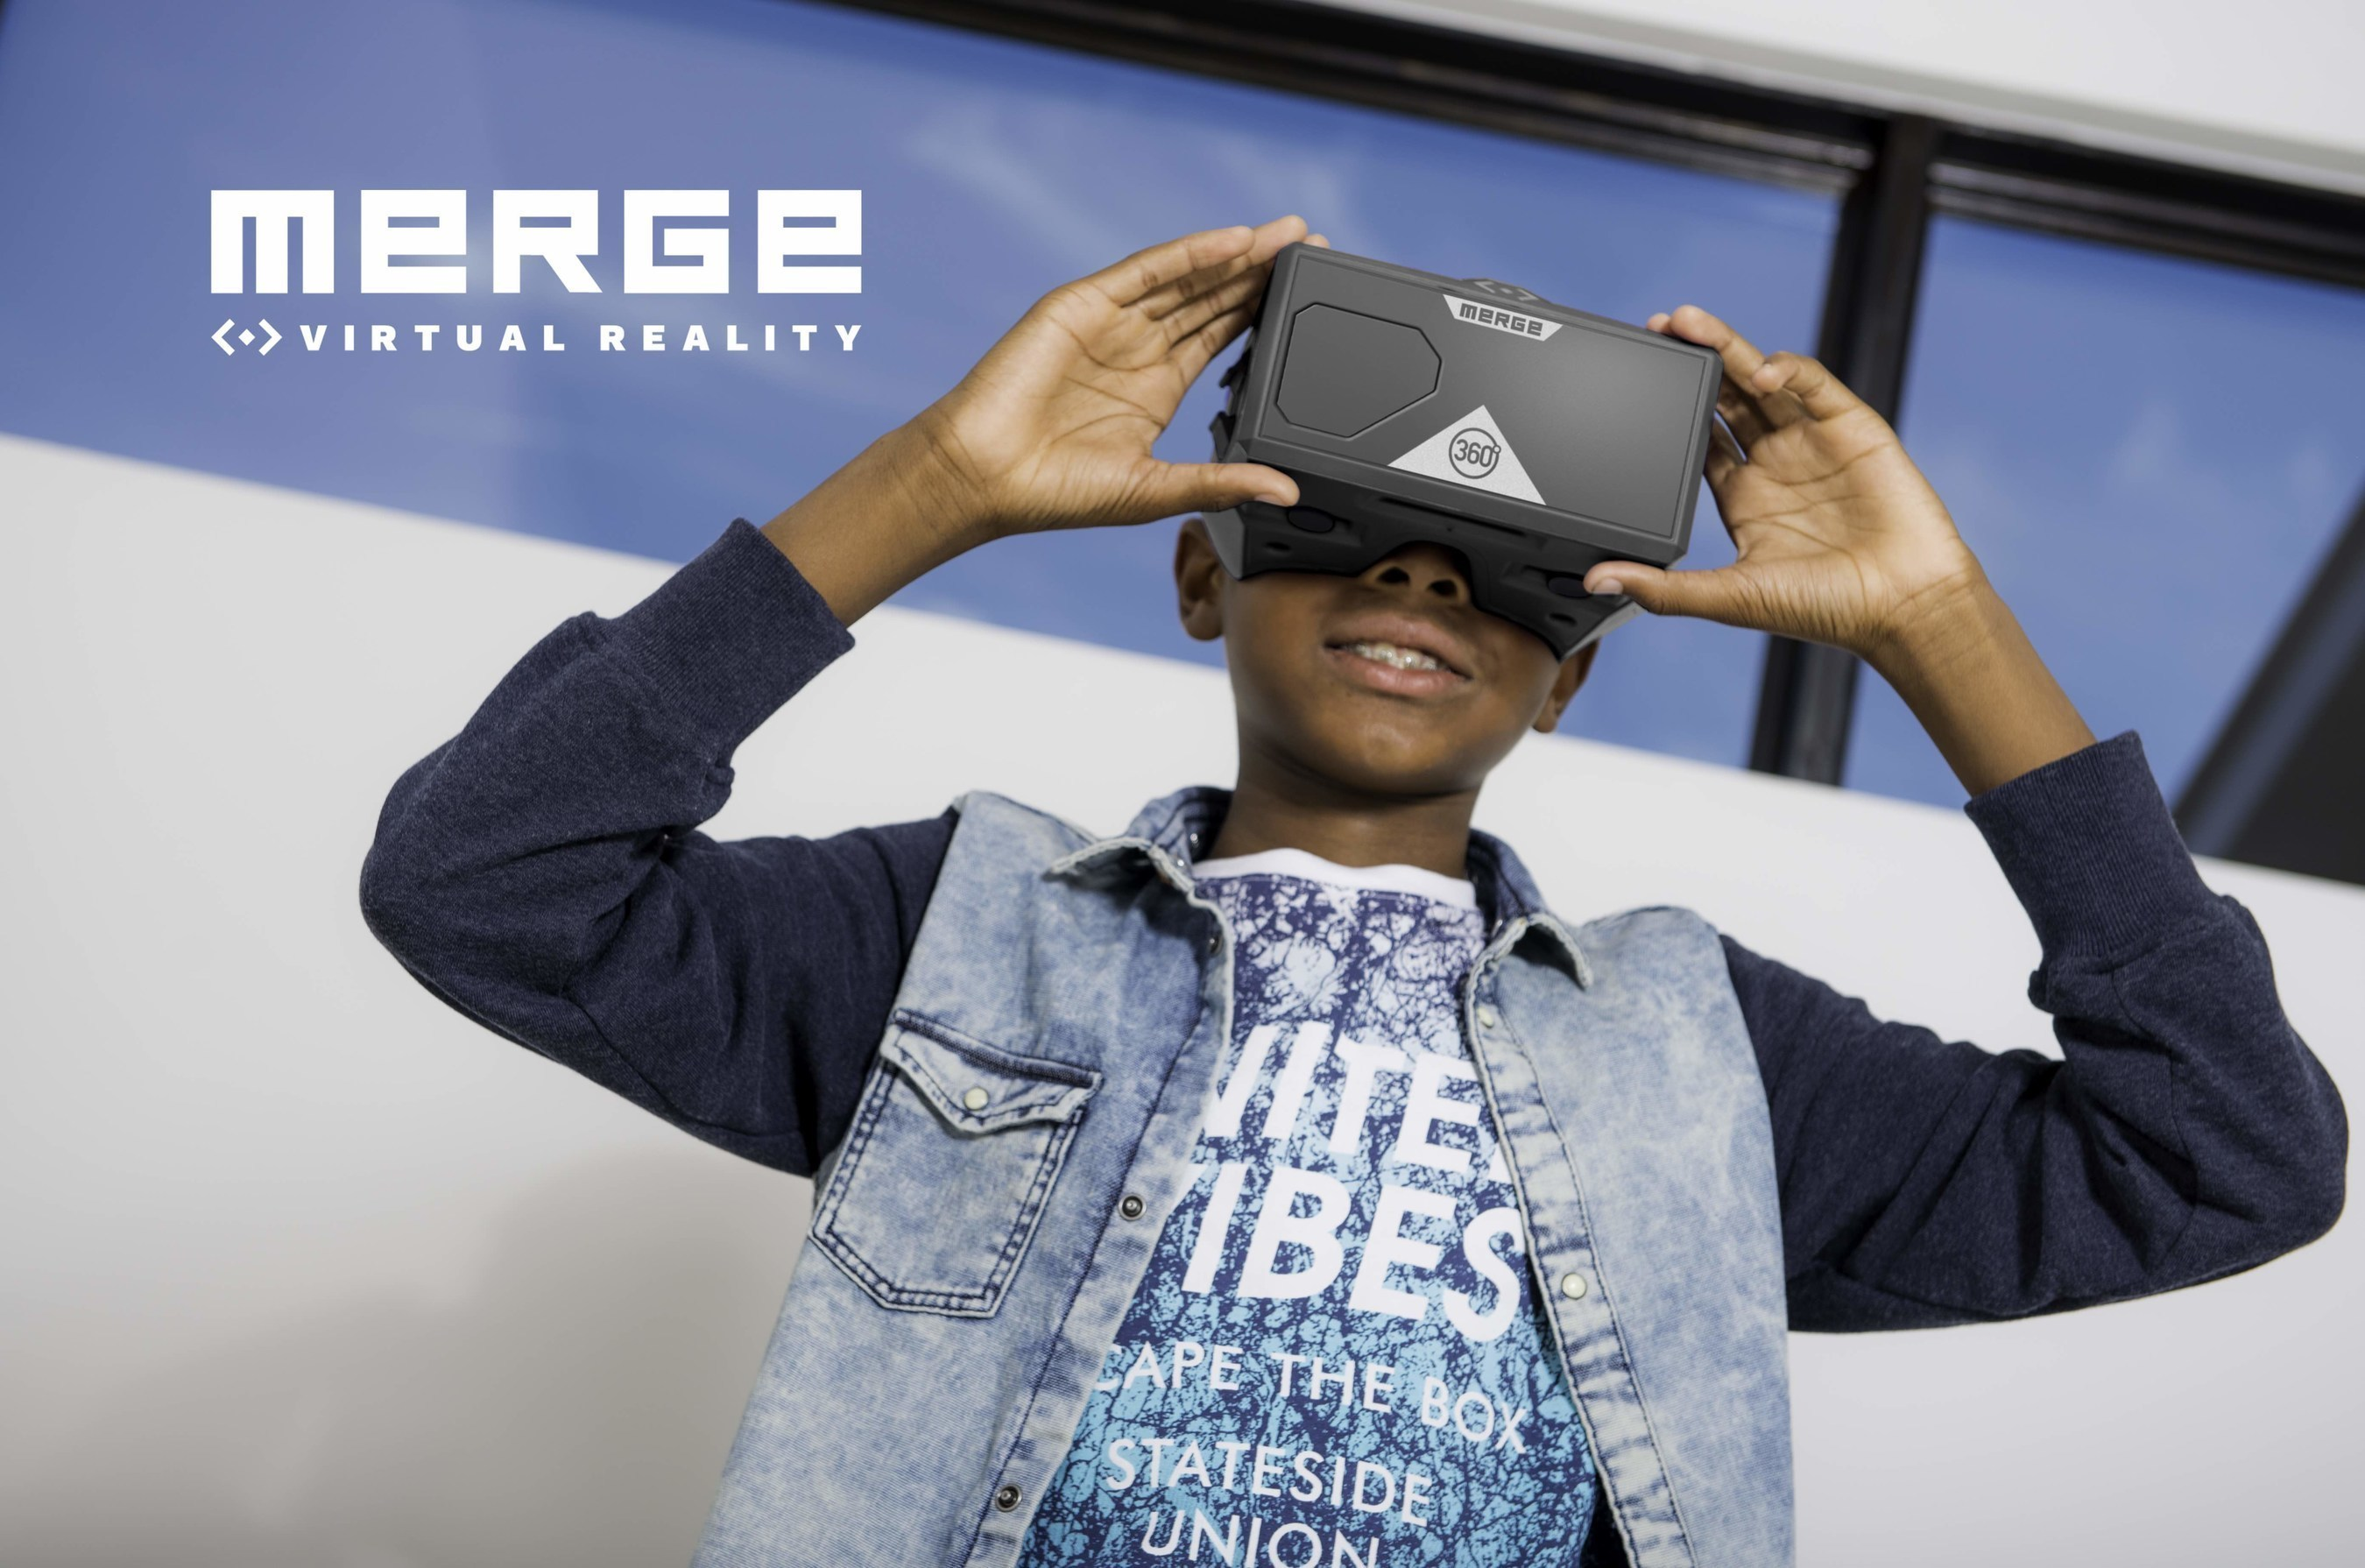 Limited edition Moon Grey Merge VR Goggles are now available exclusively at Best Buy.